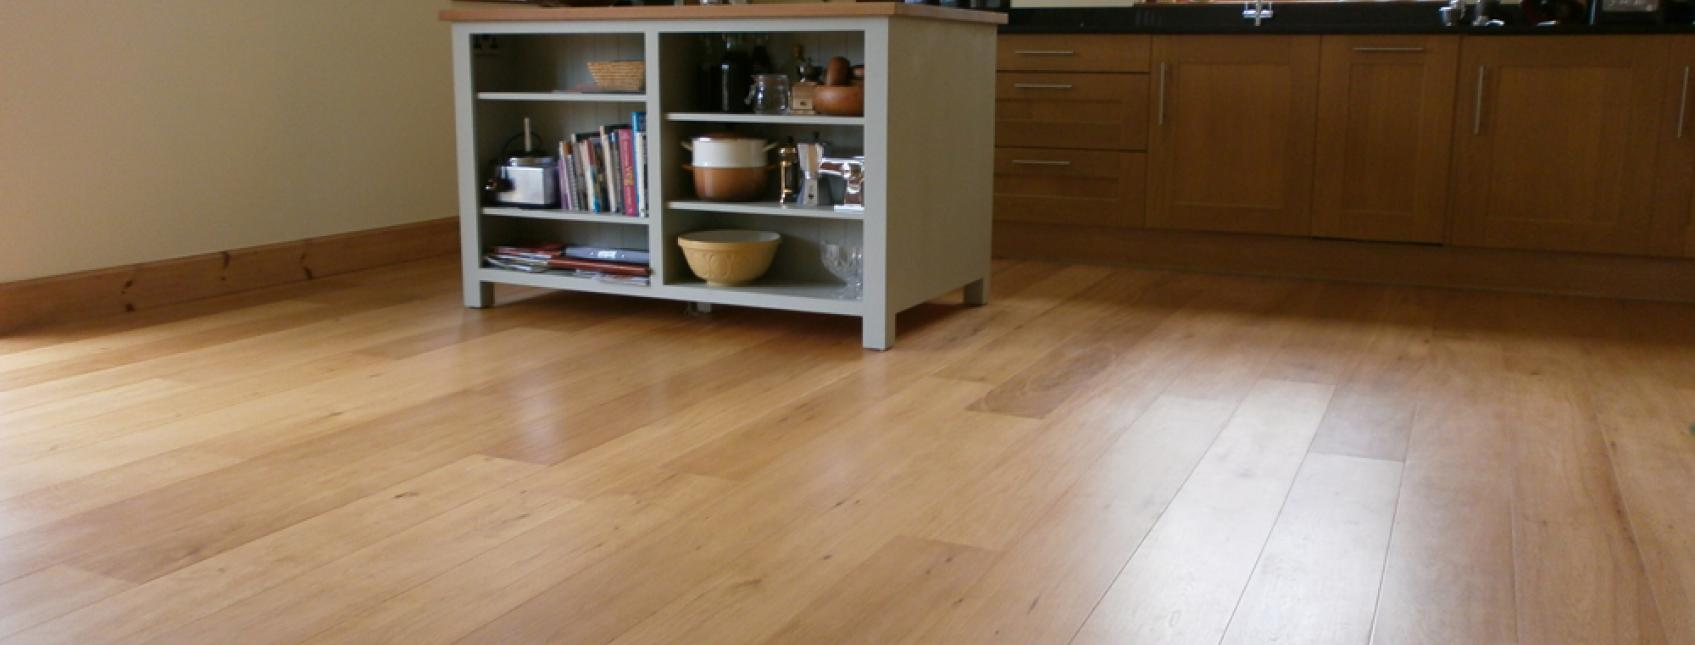 treatex and flooring laid in kitchen